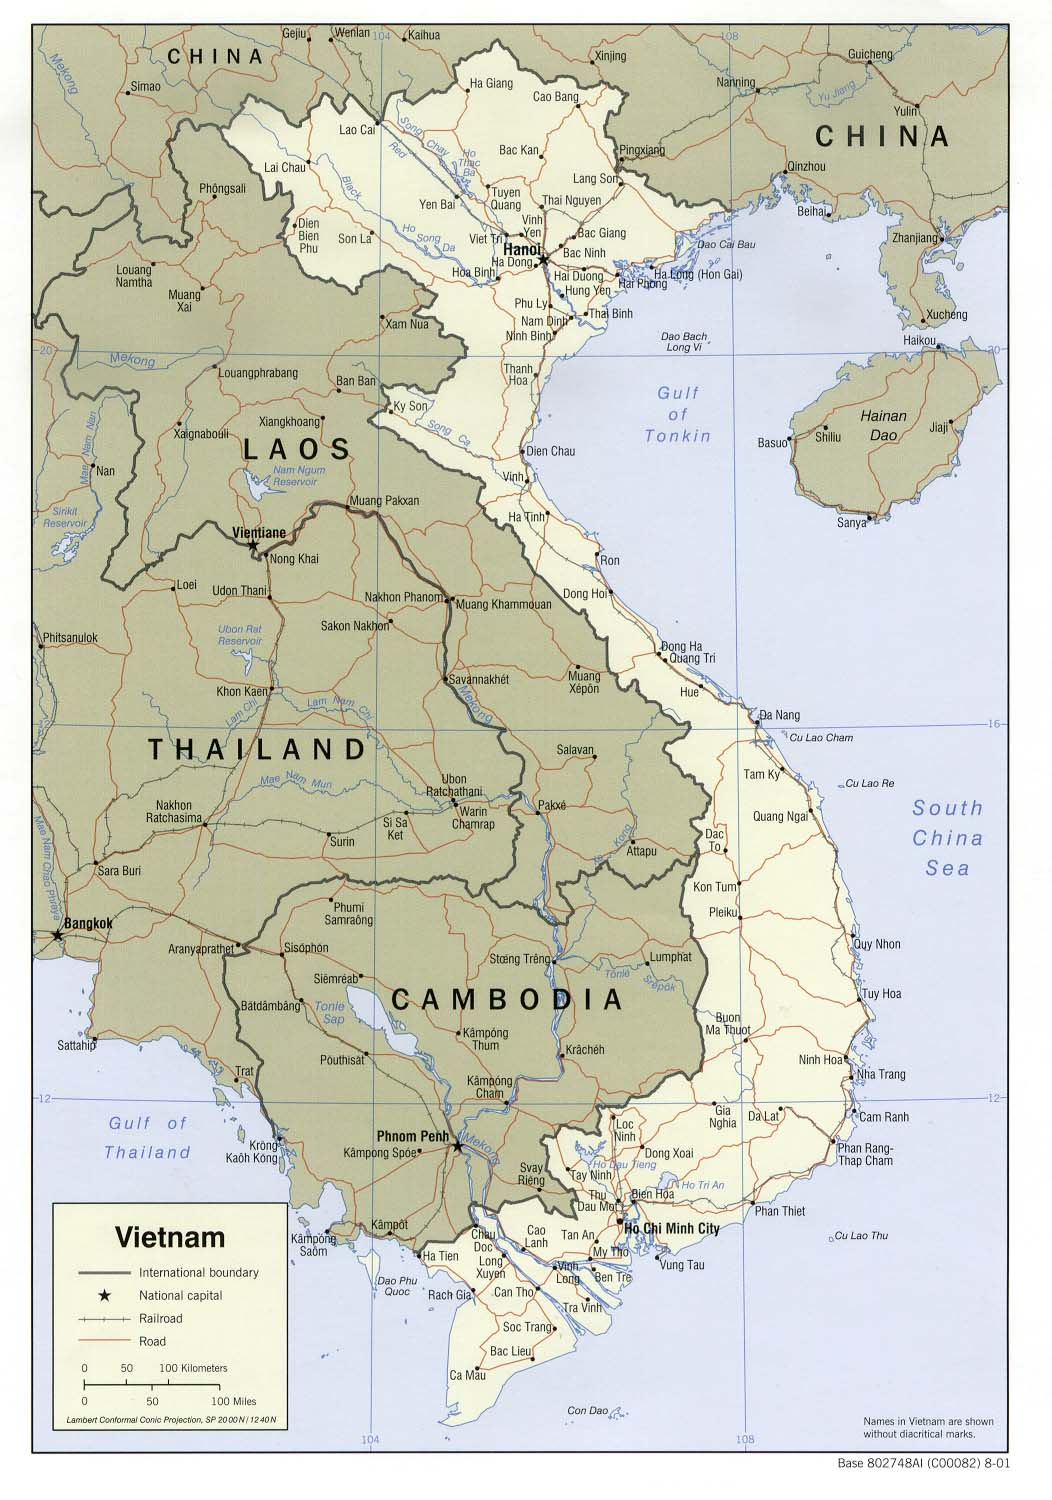 Lai Khe Vietnam Map.Vietnam Maps Perry Castaneda Map Collection Ut Library Online